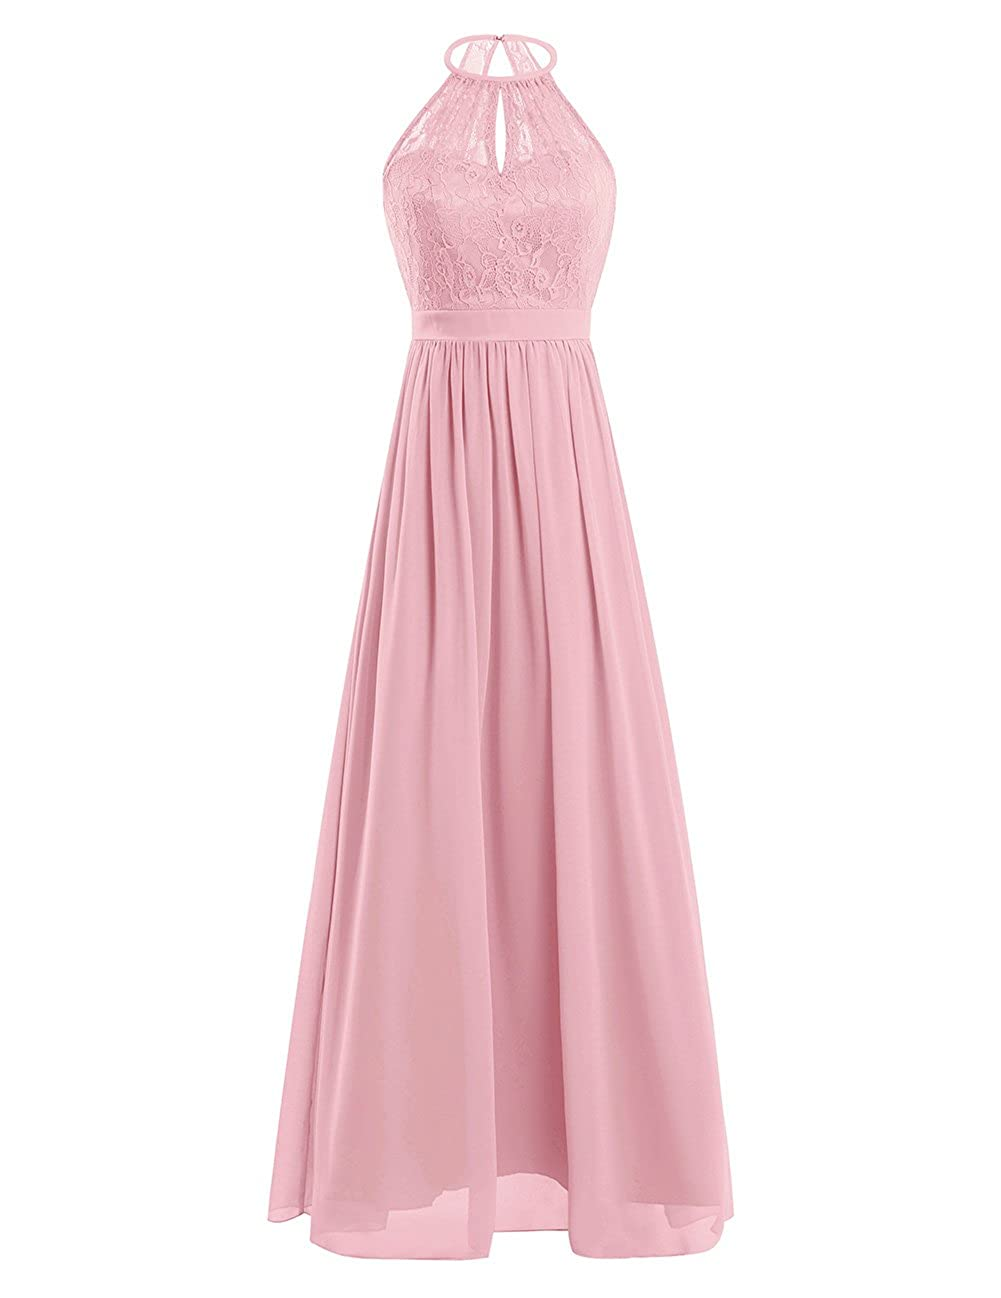 FEESHOW Womens Cut Out Back Halter Sleeveless Maxi Dress Chiffon Formal Evening Dresses at Amazon Womens Clothing store: